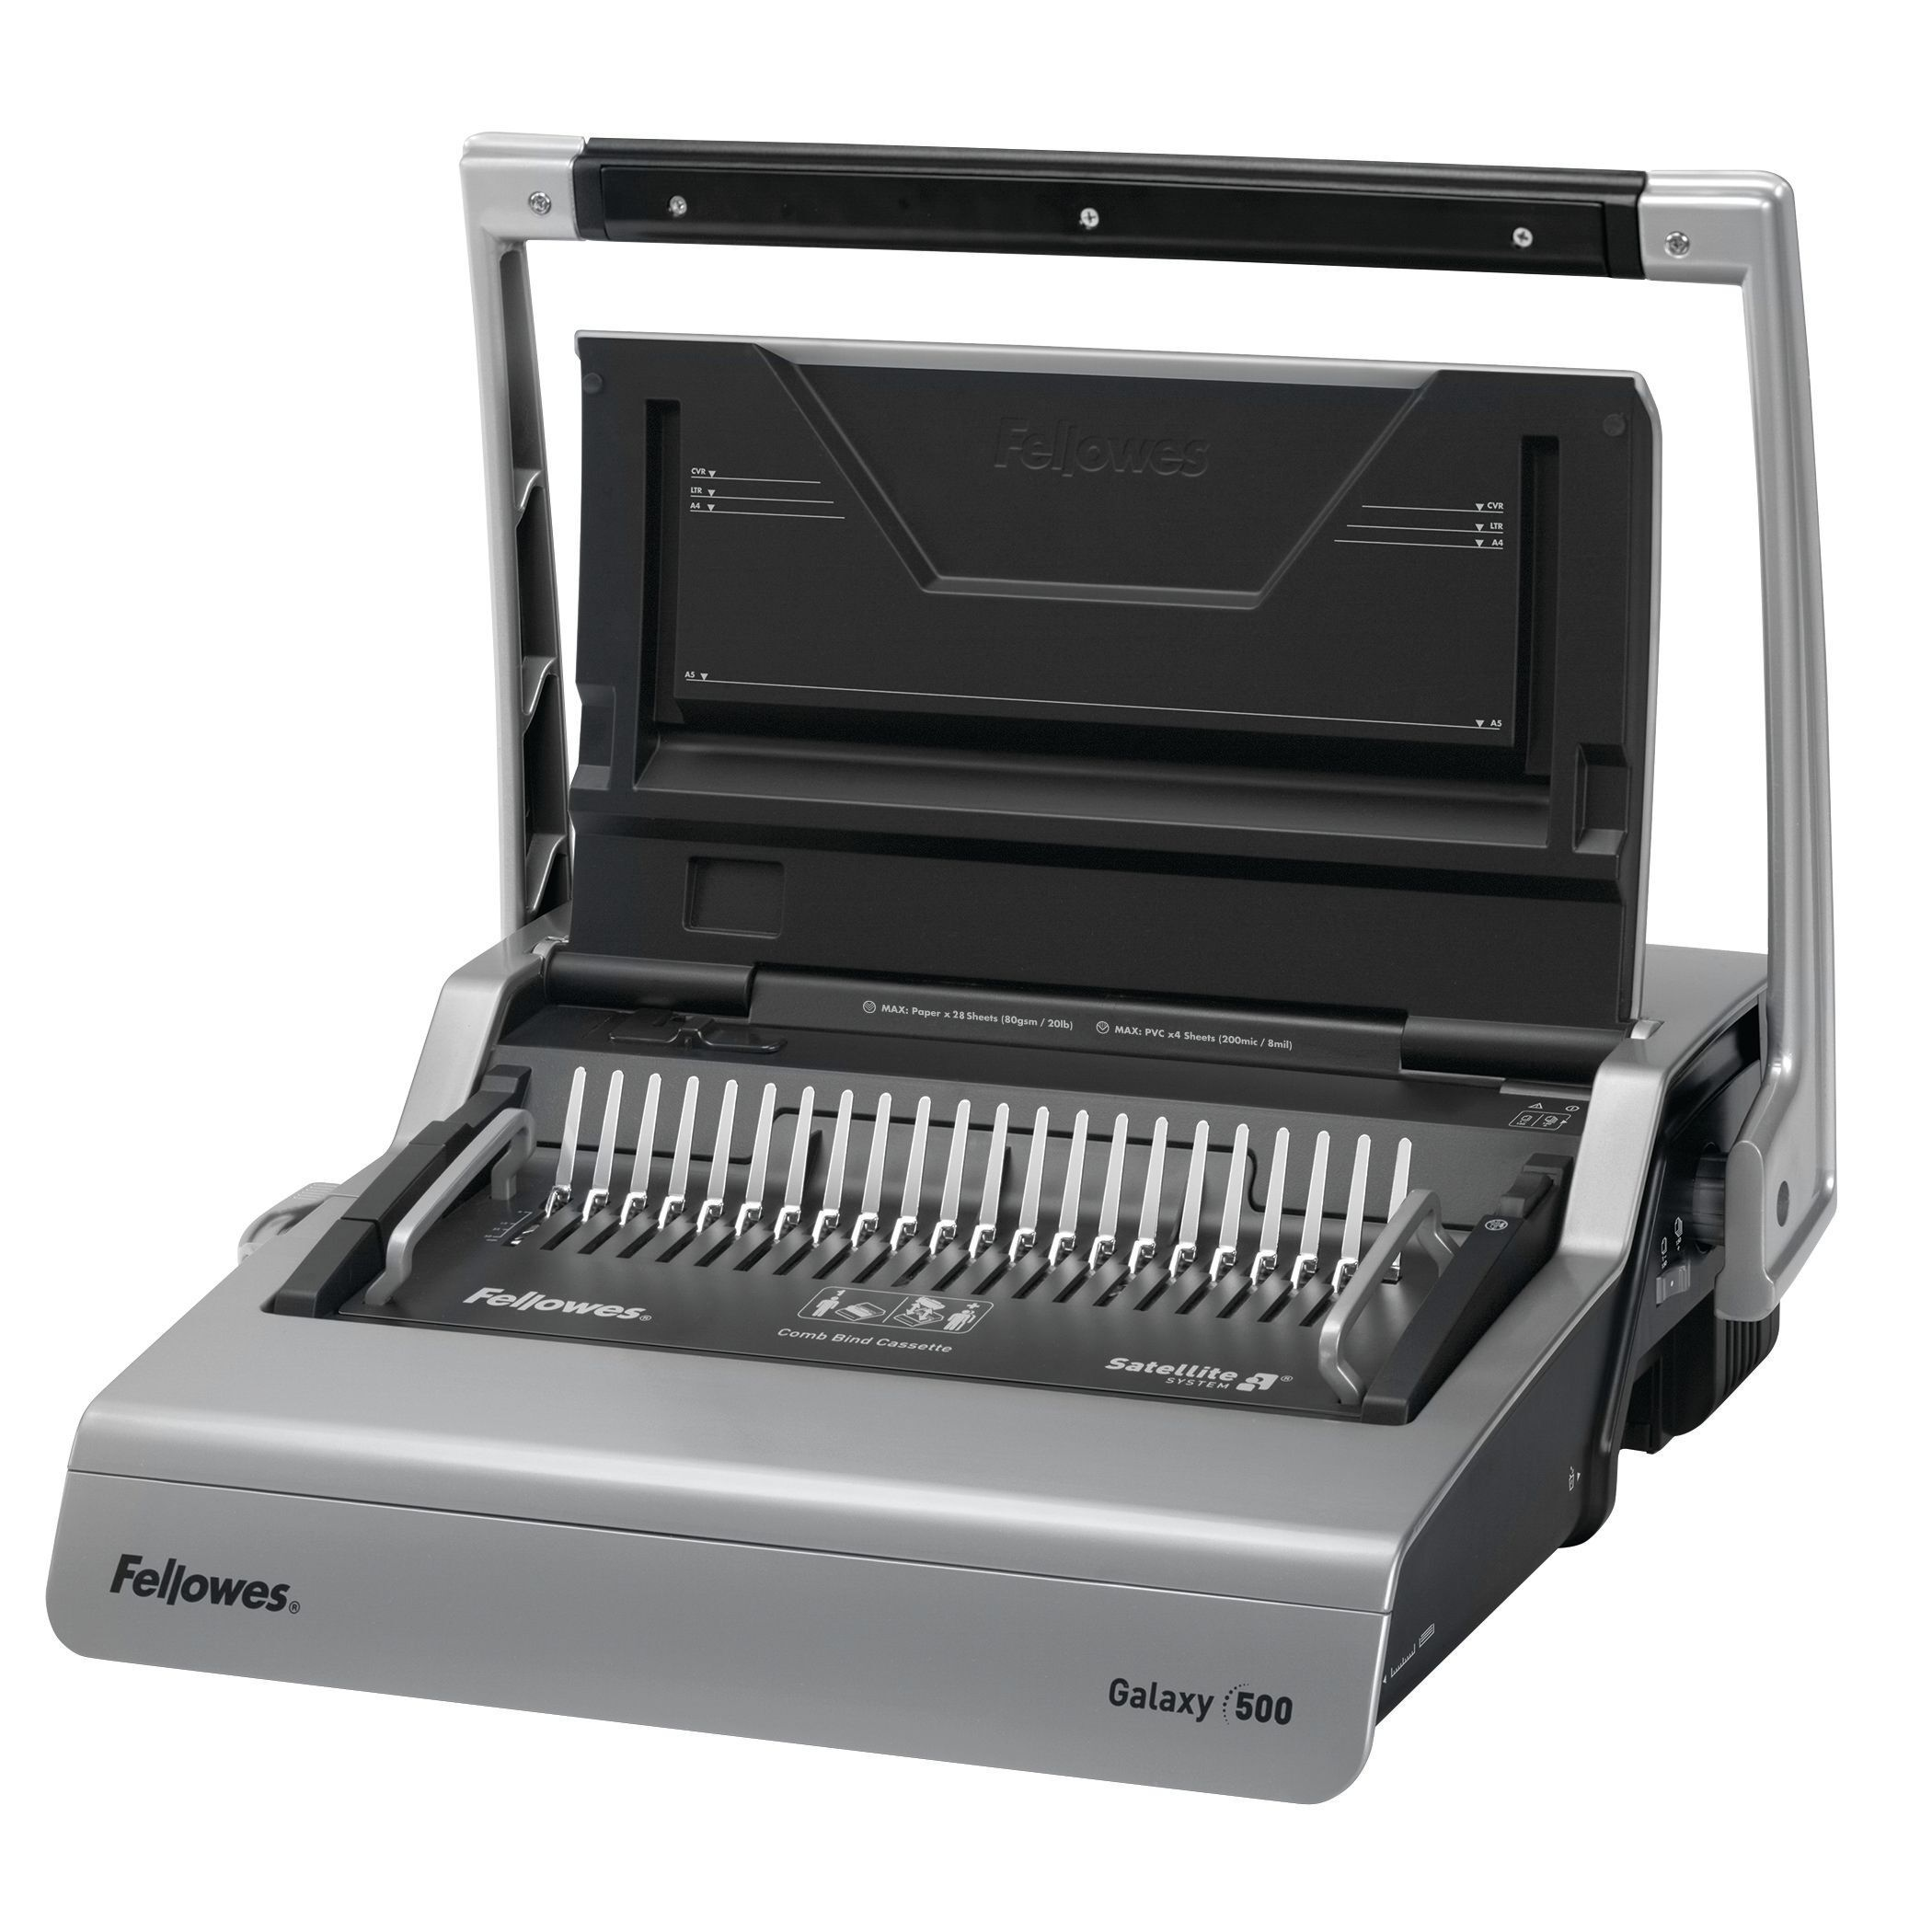 Fellowes Galaxy 500 - machine à relier / relieuse perforeuse manuelle - perfore 28 feuilles - relie 500f